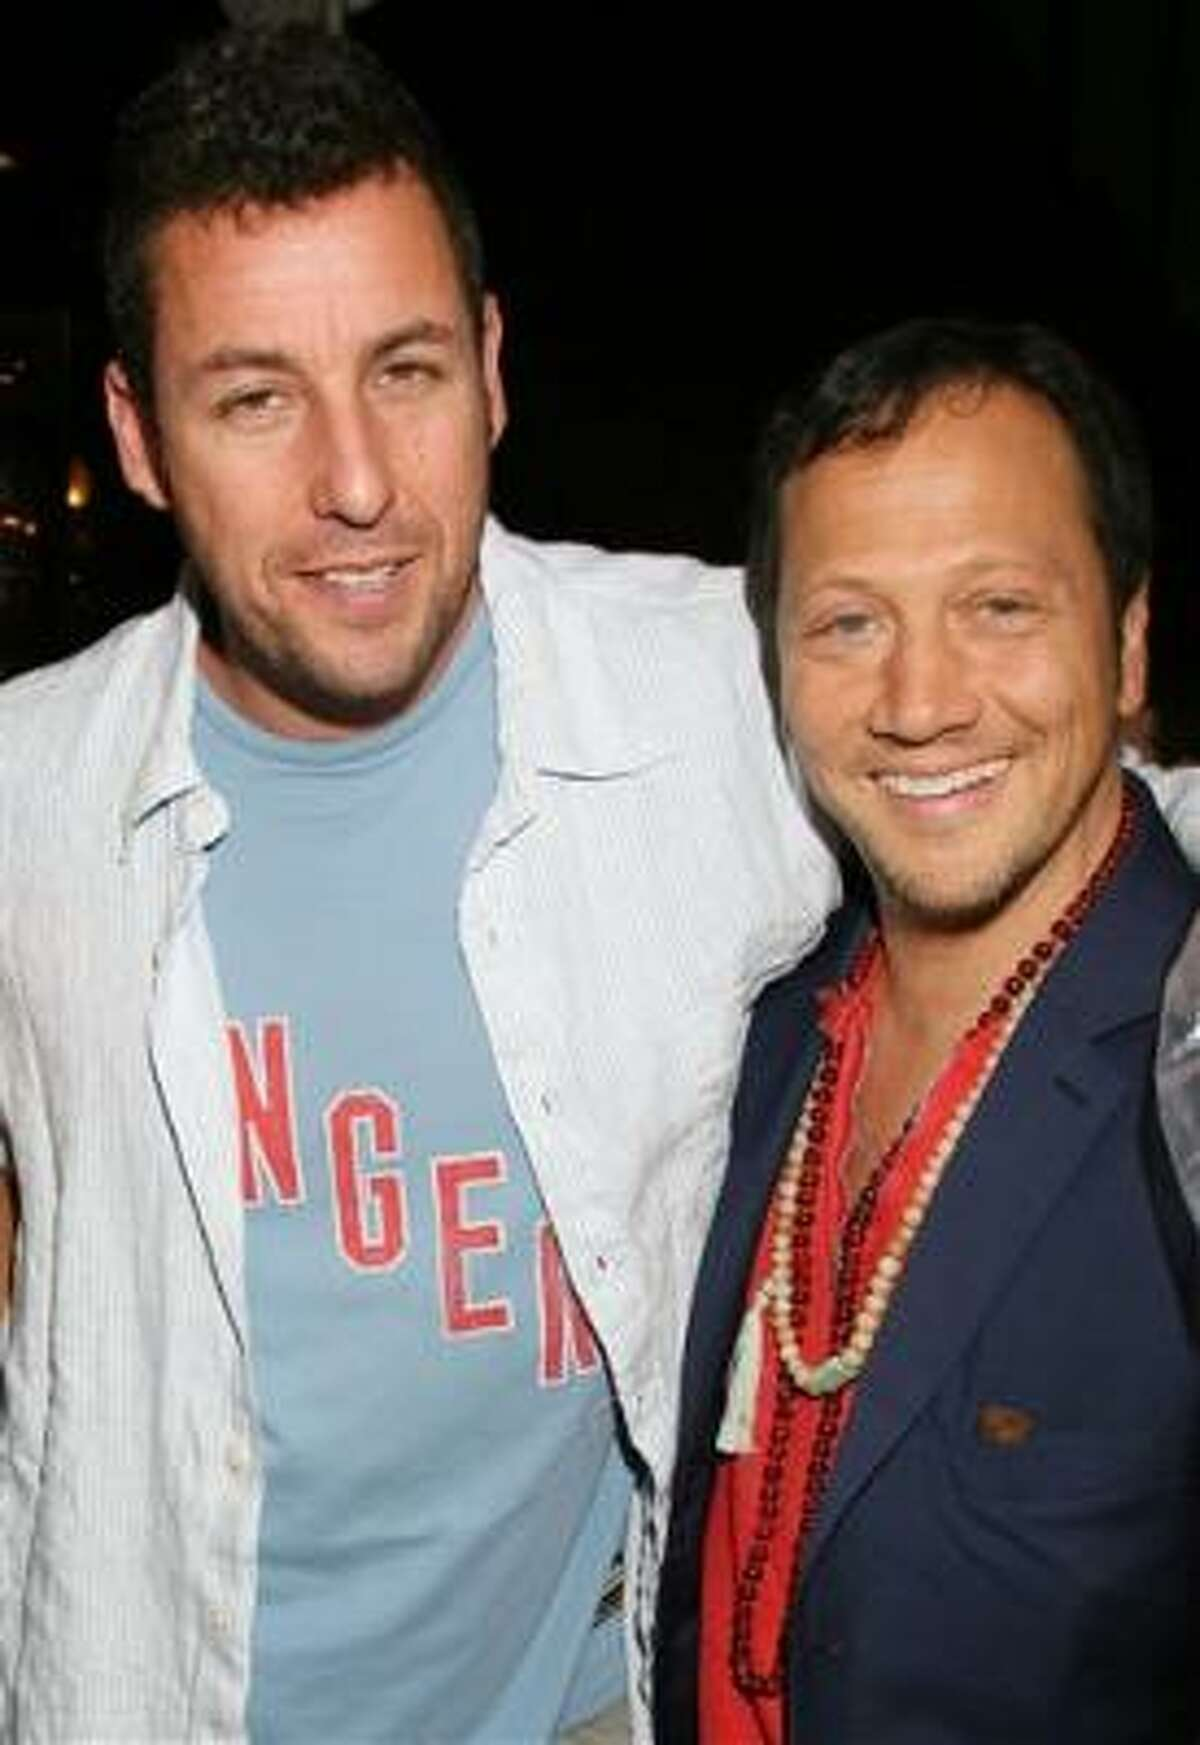 Adam Sandler & Rob Schneider Schneider appears in nearly every movie of Sandler's, from The Waterboy, Big Daddy, and Mr. Deeds, up to I Now Pronounce You Chuck and Larry. Even beyond the big screen, the two are tight and have been spotted at basketball games, restaurants and parties together.